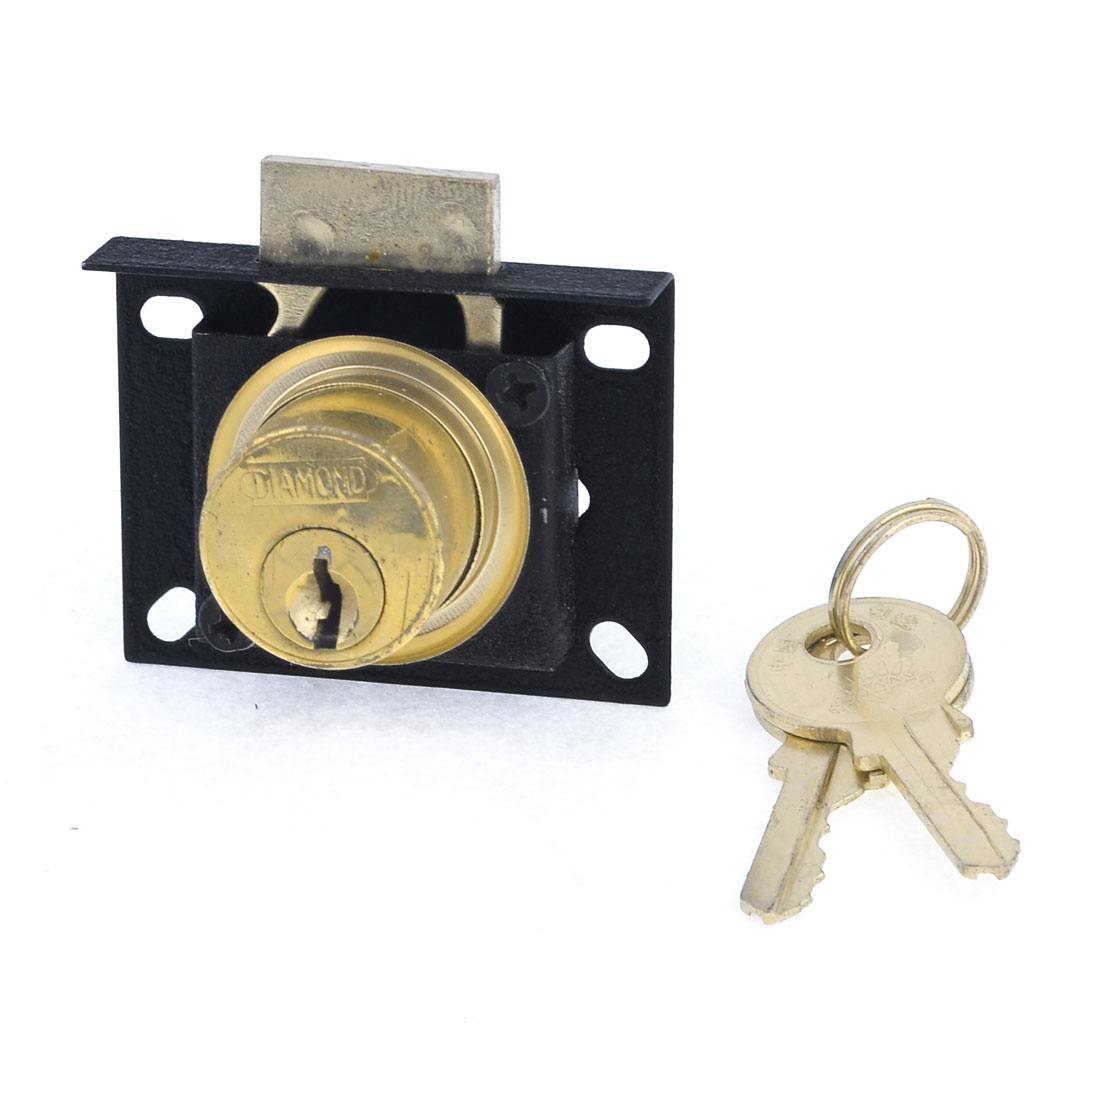 Cabinet Display Case Showcase Single Glass Door Lock Black Gold Tone